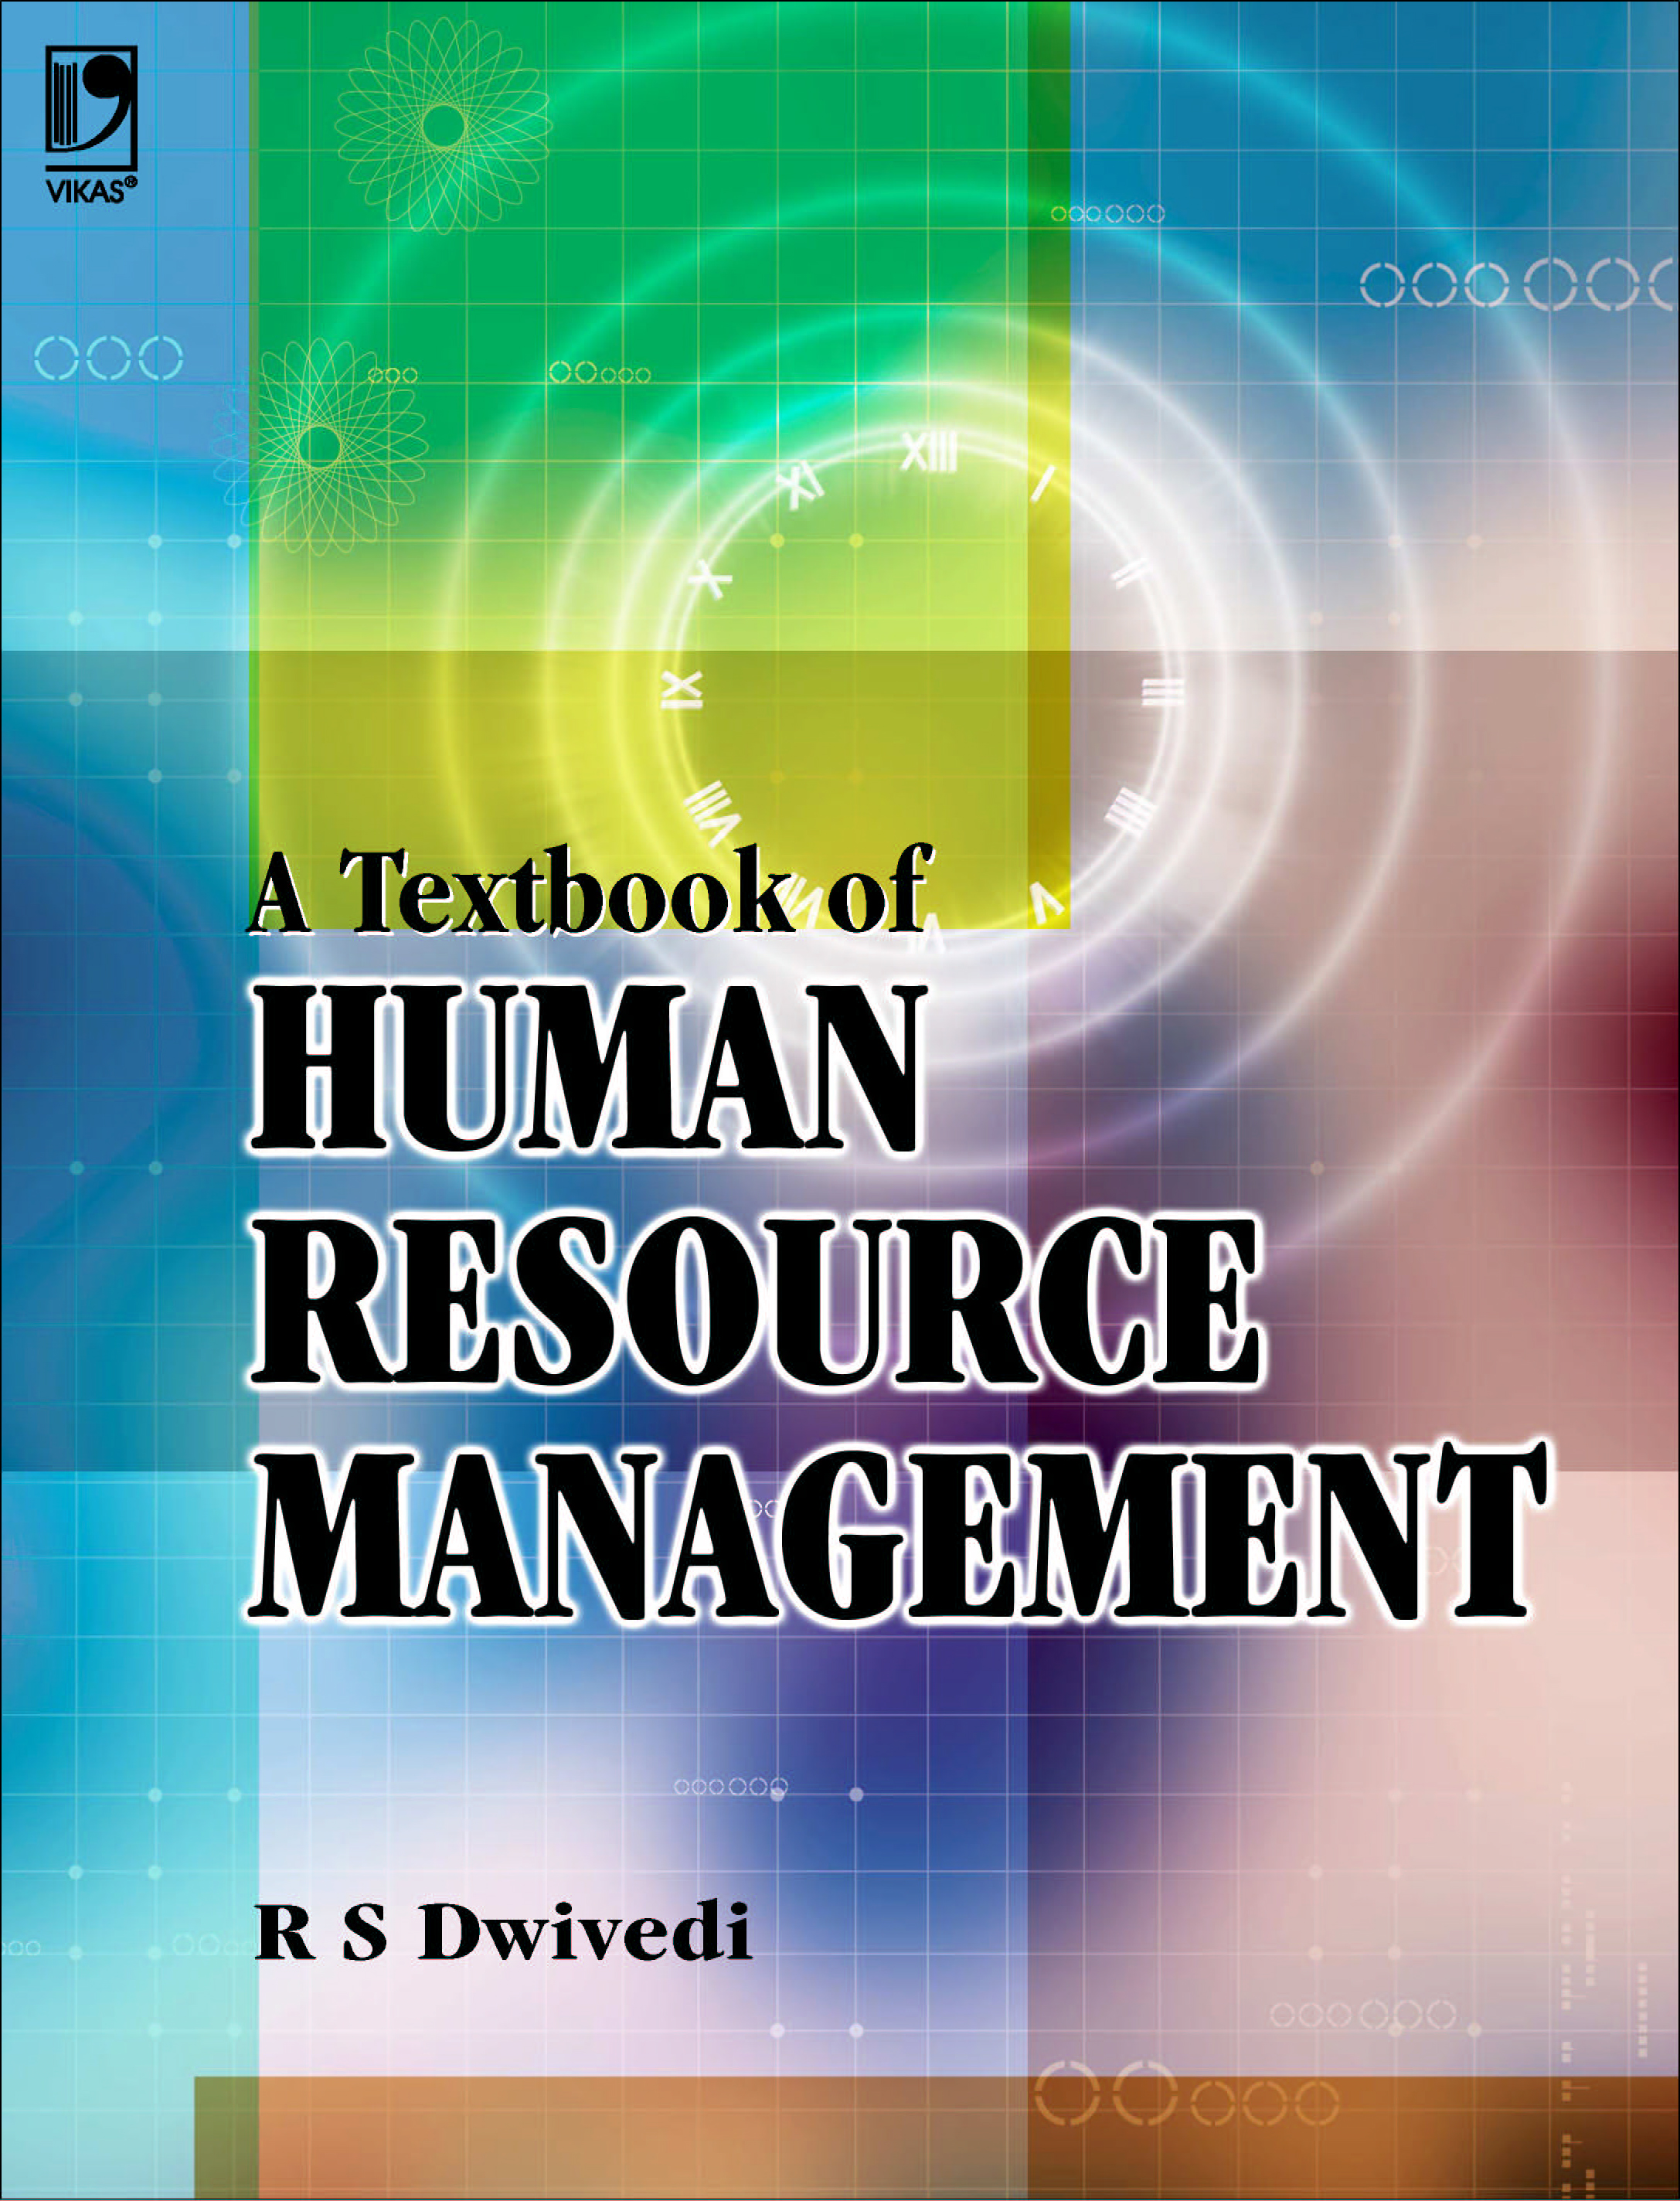 A Textbook of Human Resource Management by R S Dwivedi